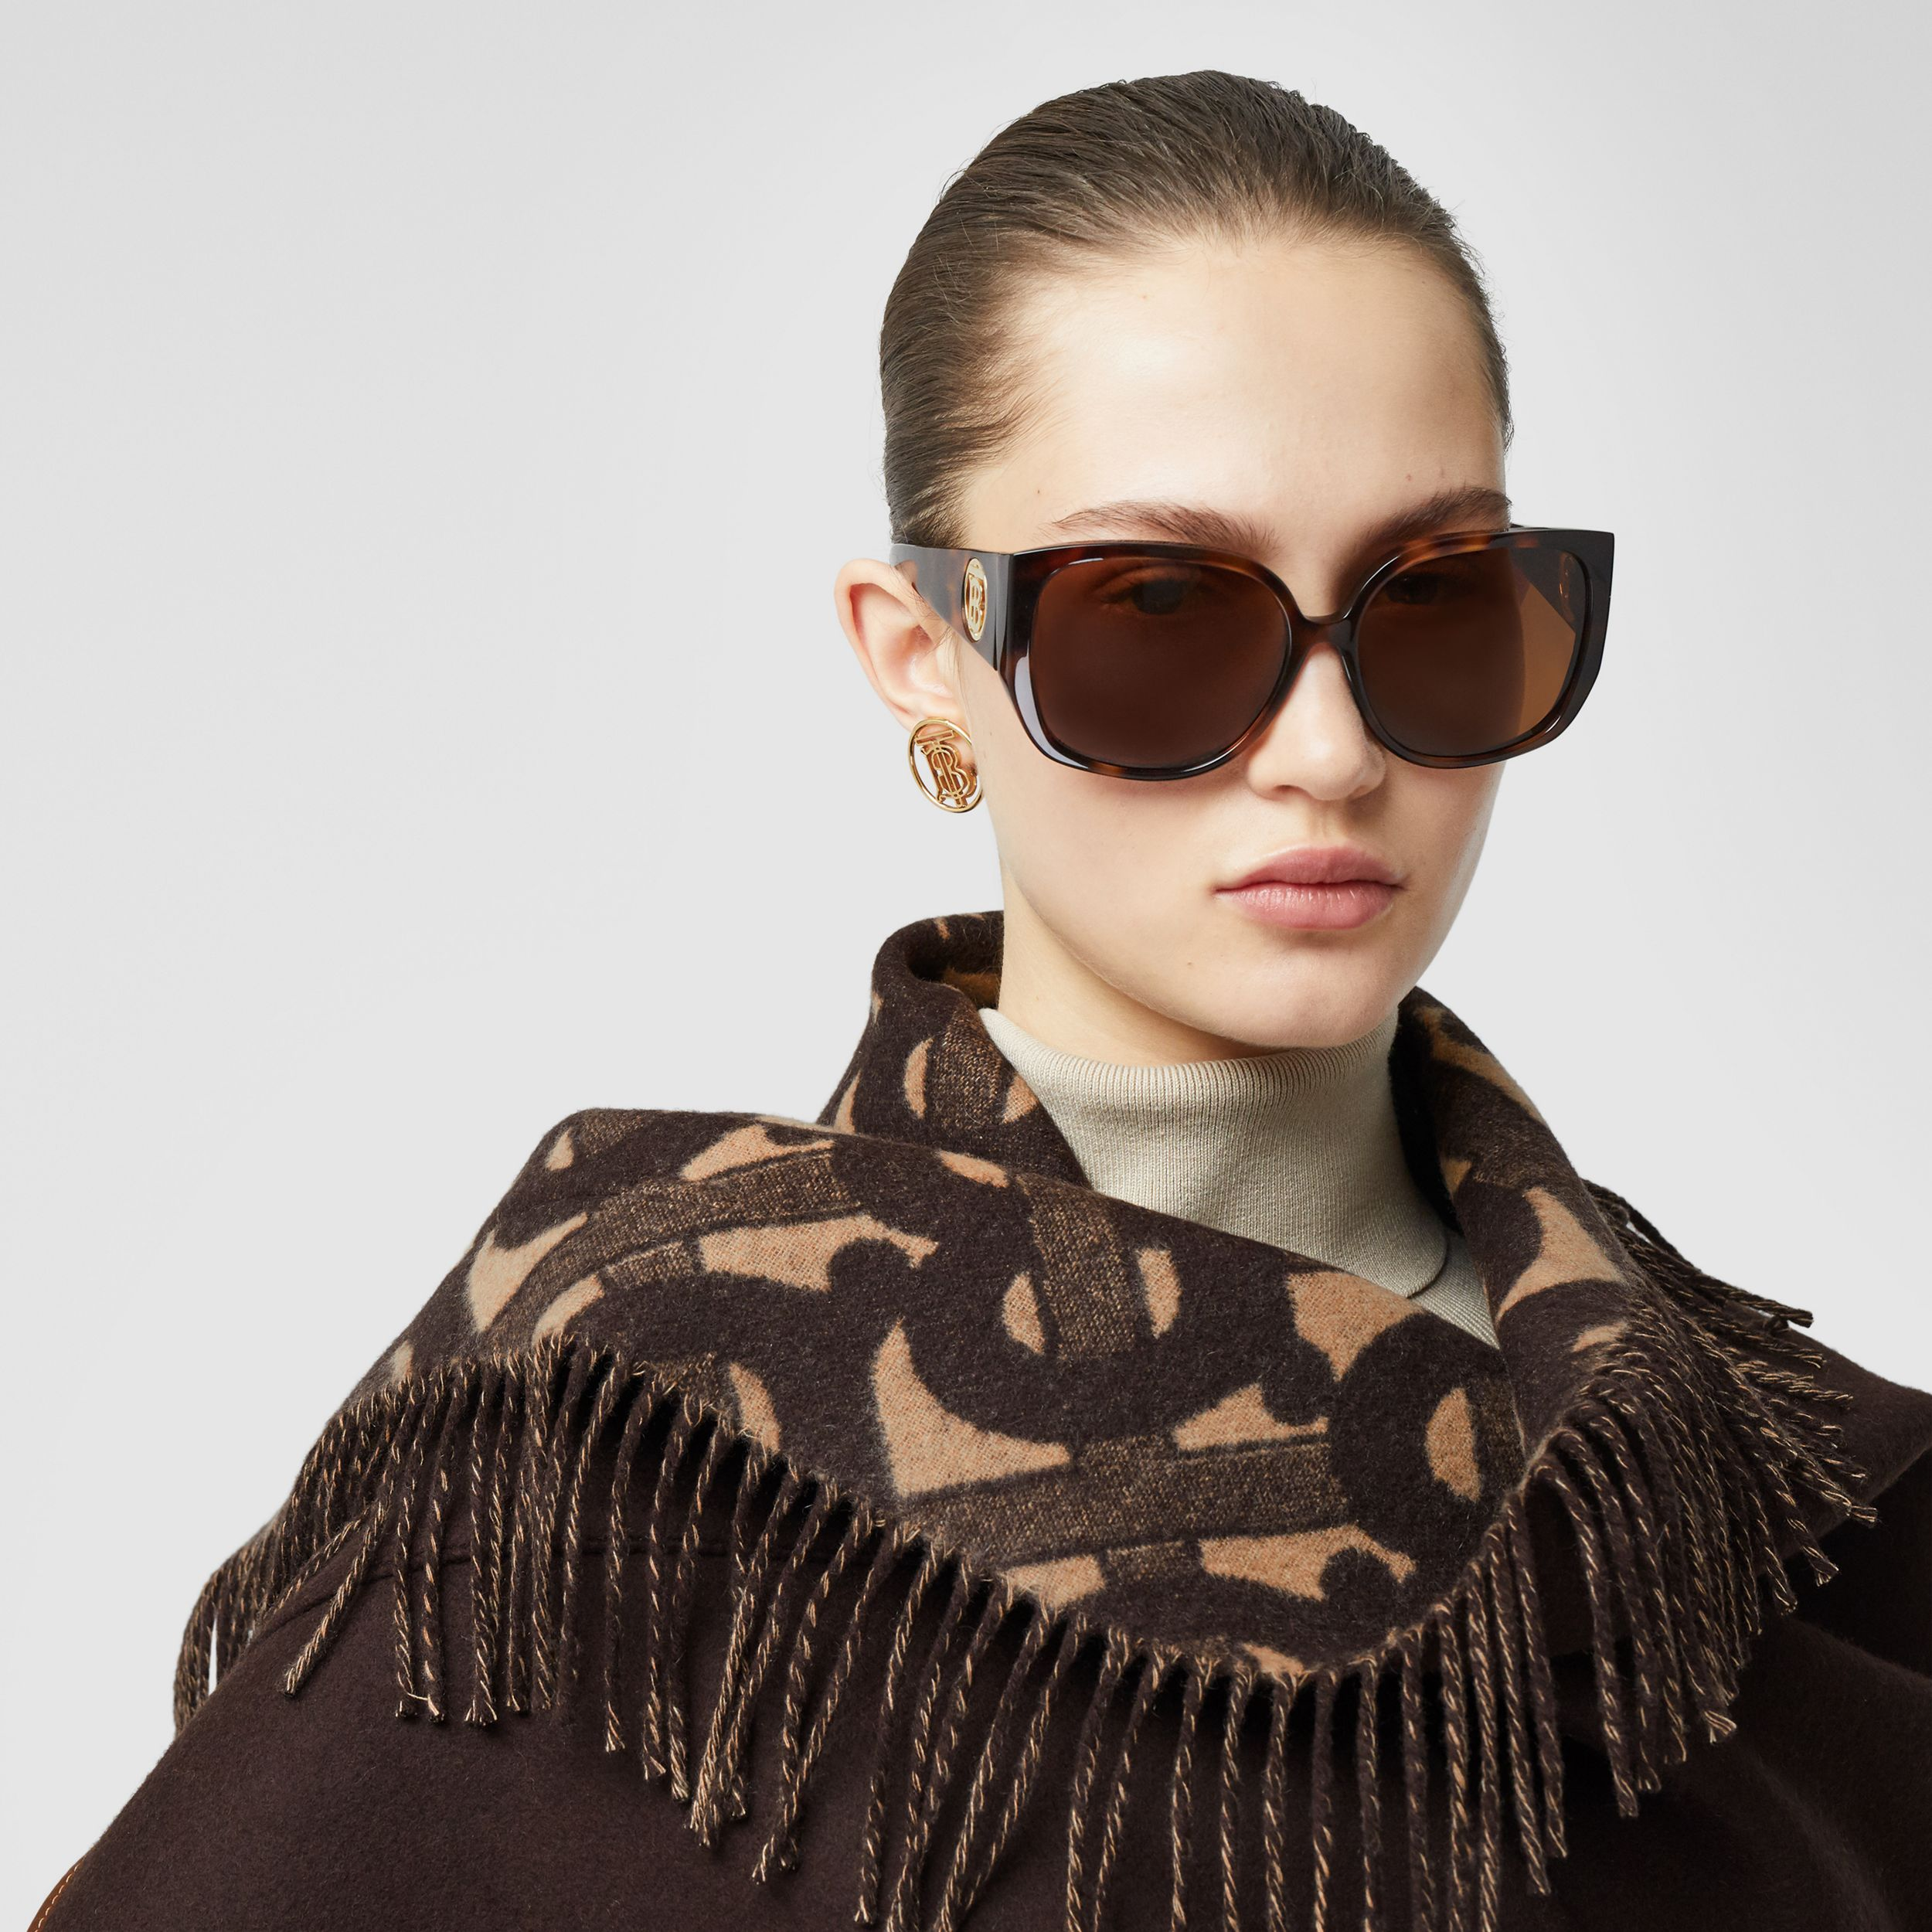 Monogram Merino Wool Cashmere Jacquard Cape in Deep Brown - Women | Burberry - 2